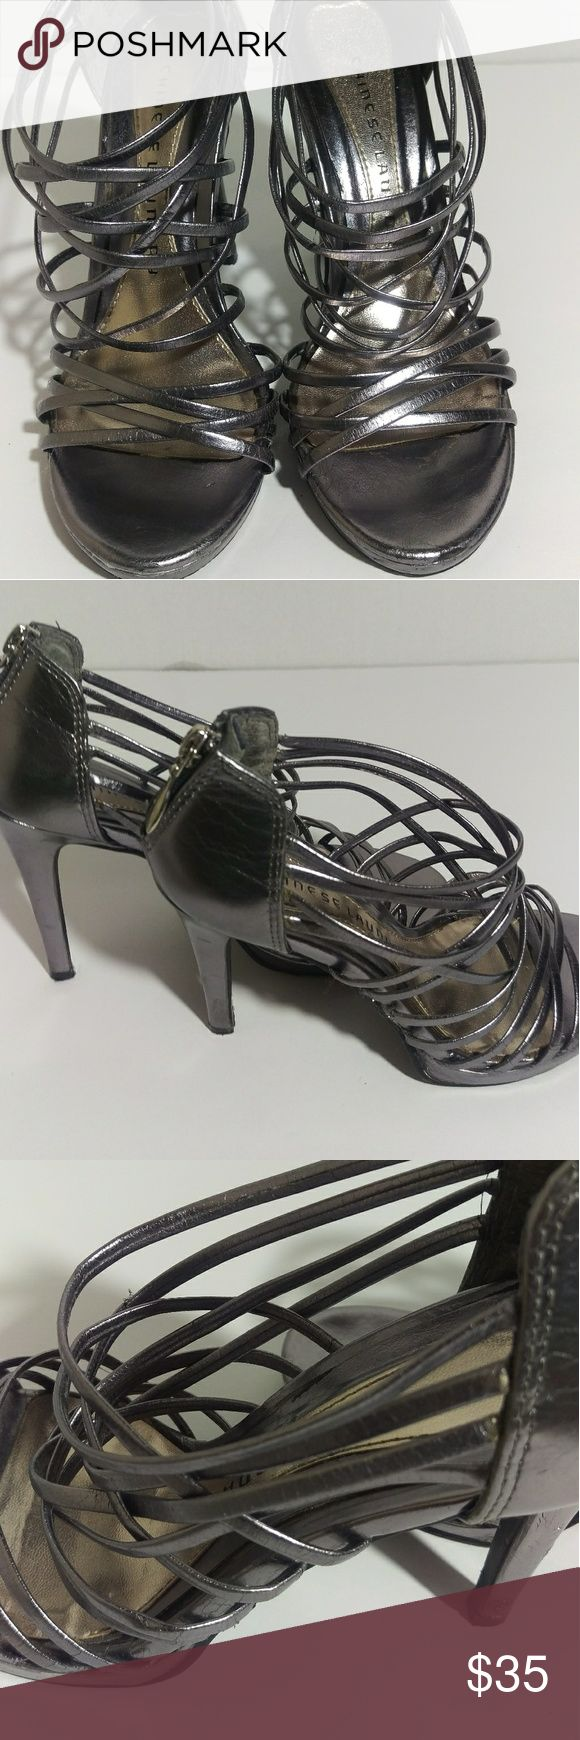 Chinese Laundry Pewter /Gray Strappy Sandals Chinese Laundry Pewter /Gray Strappy Sandals. Zipper up the back.  Size 6M. Heels are 4 inches tall. All made made material. Chinese Laundry Shoes Heels